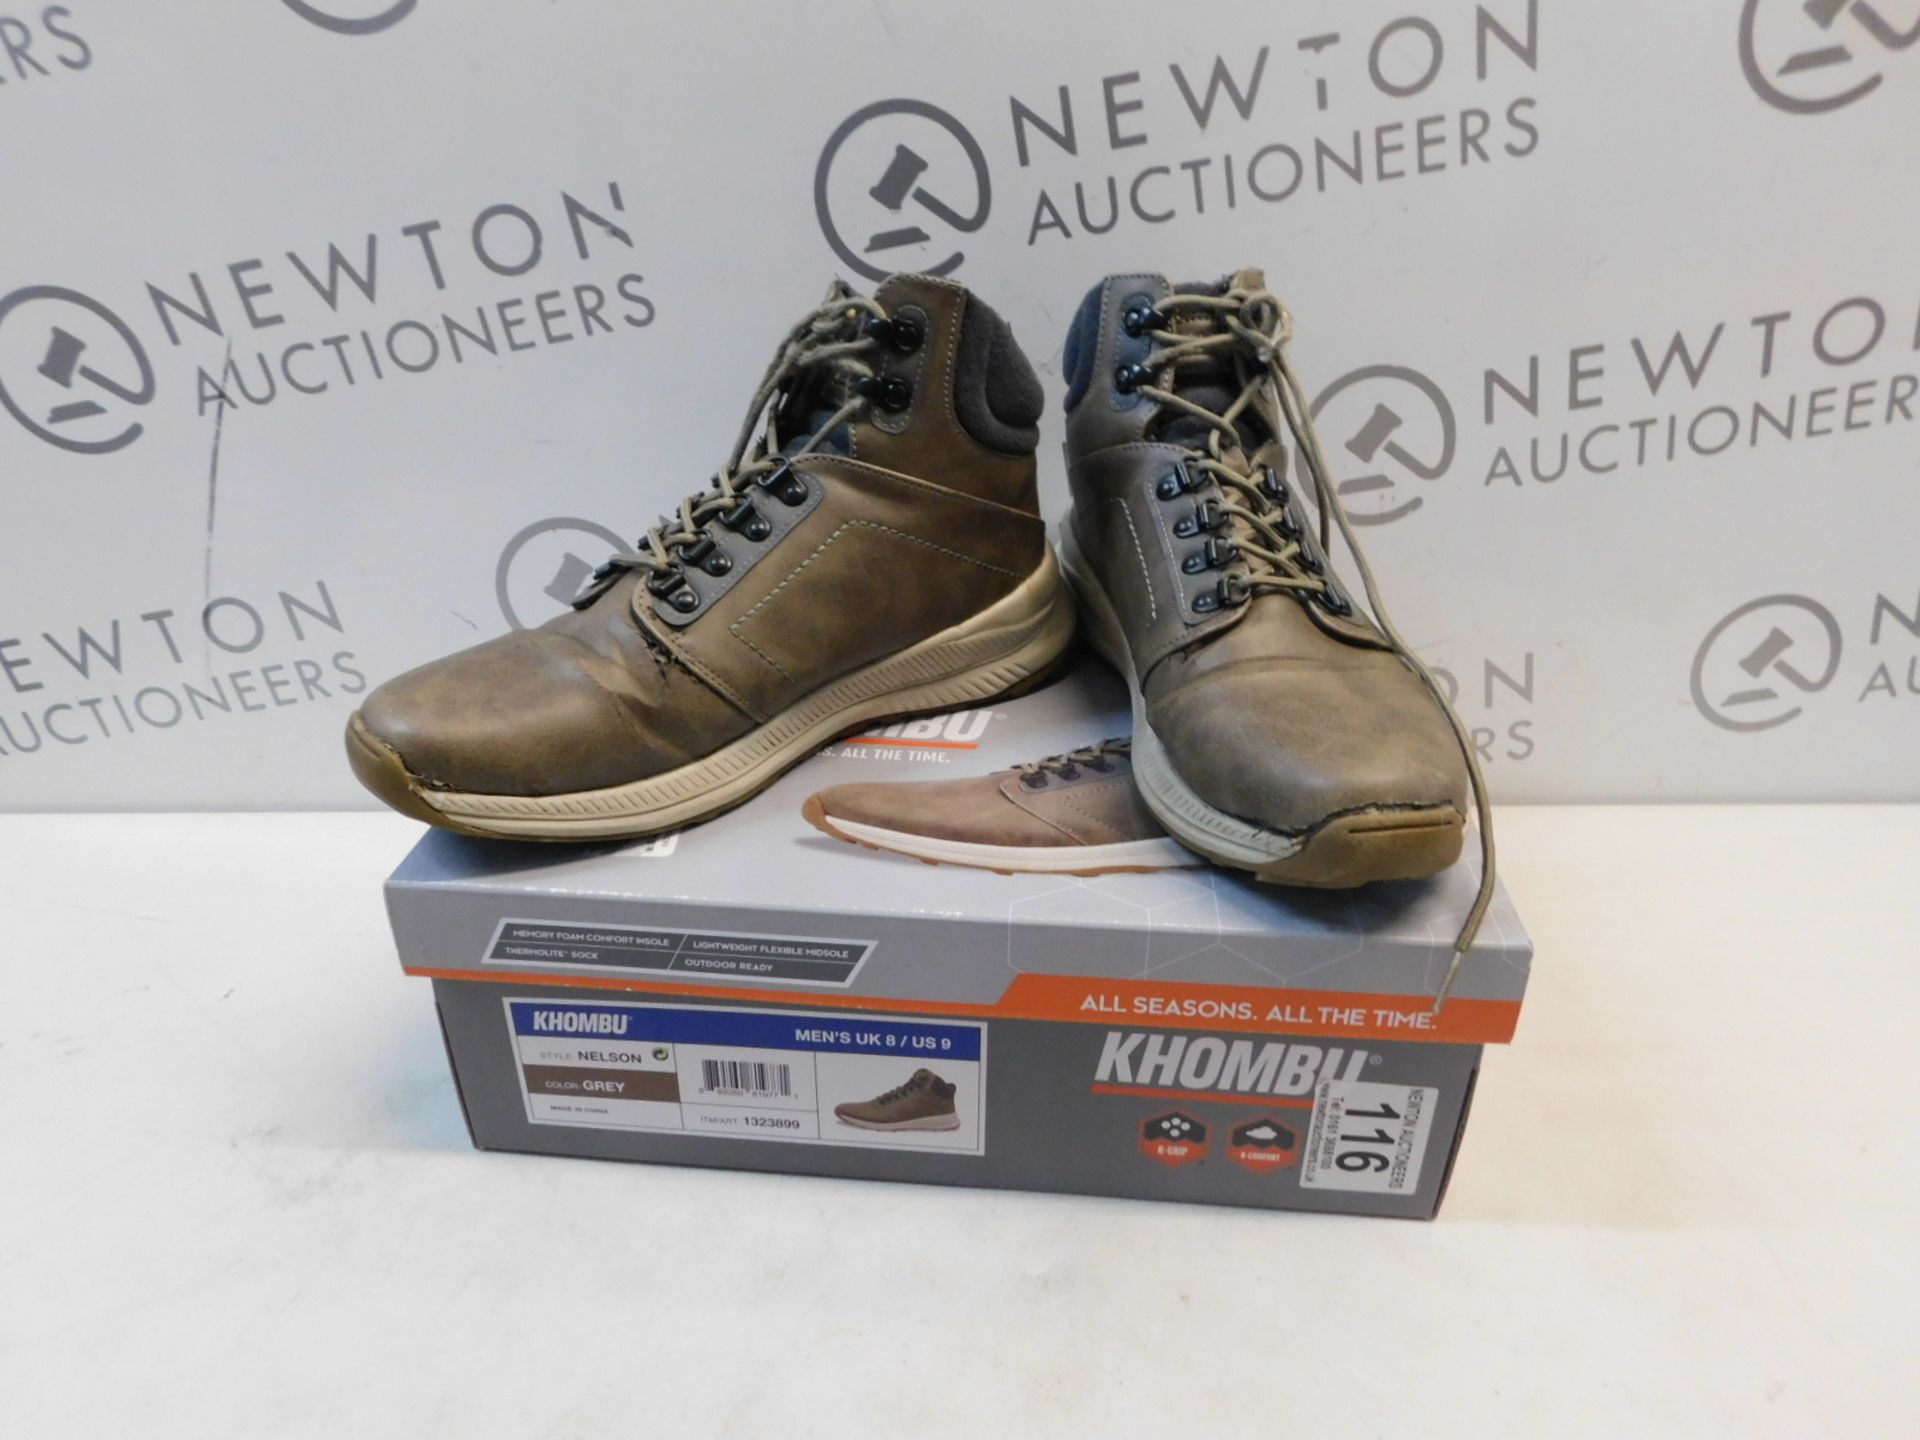 1 BOXED PAIR OF KHOMBU NELSON SHOES UK SIZE 8 RRP £59 (HAS RIPS)